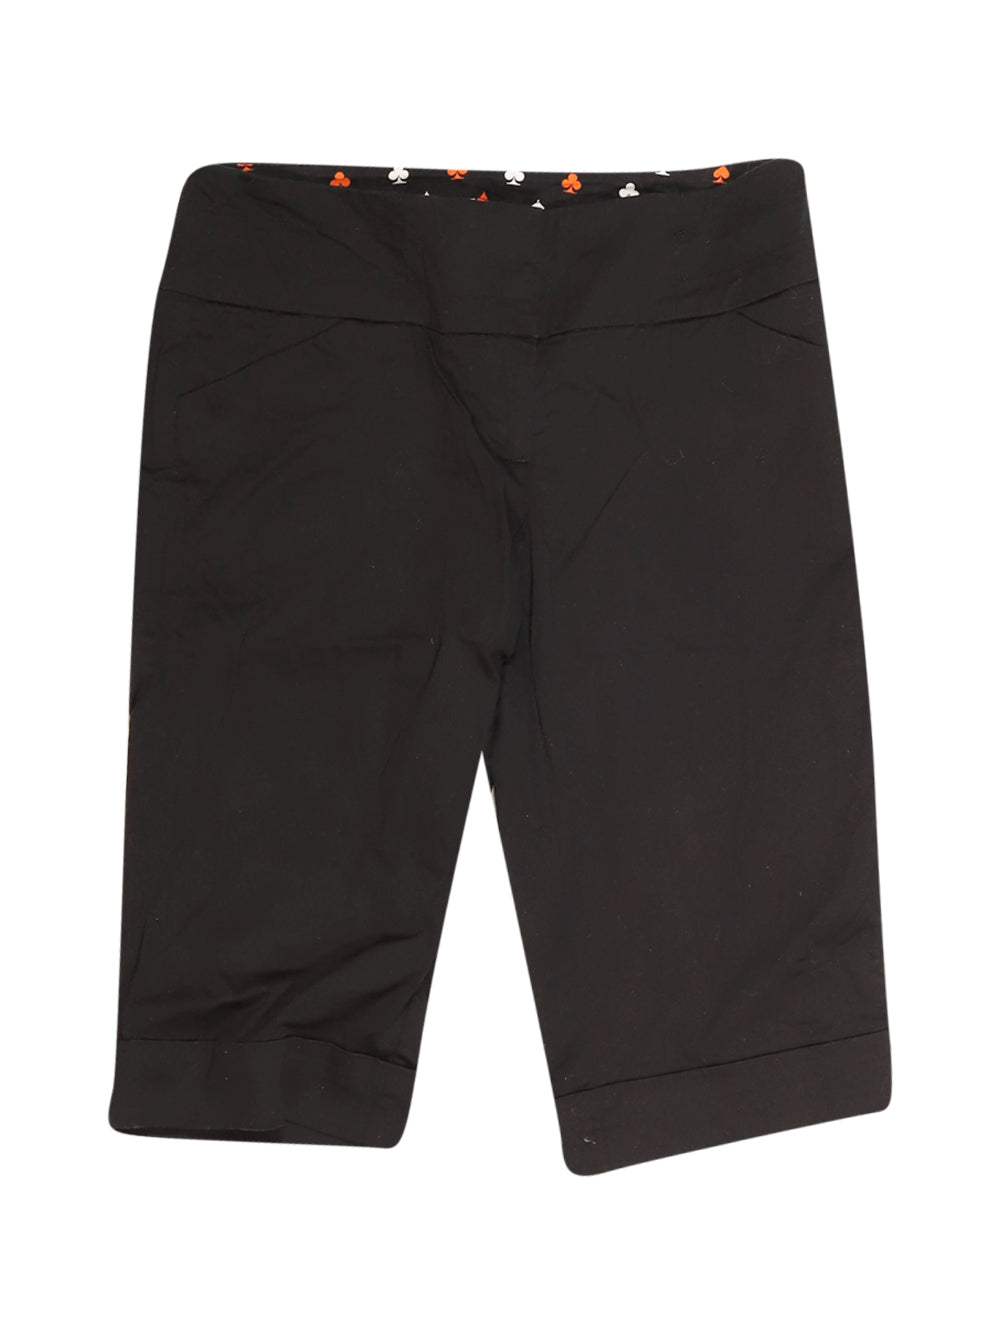 Front photo of Preloved Orsay Black Woman's shorts - size 8/S